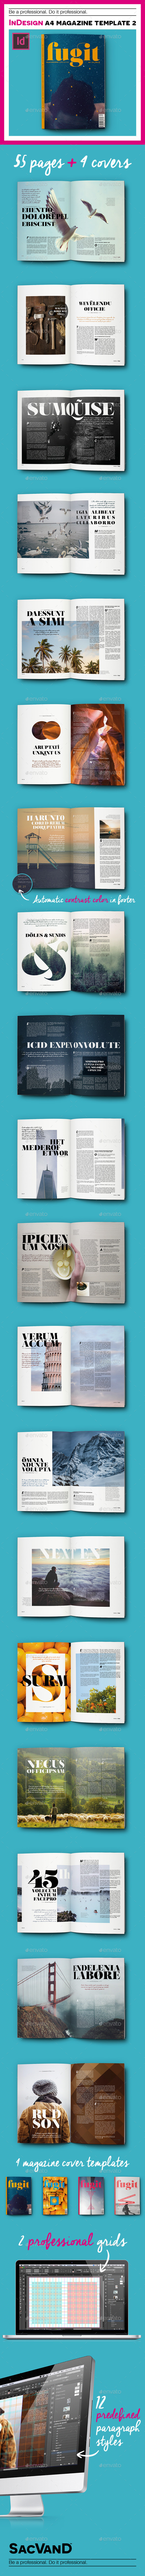 GraphicRiver InDesign A4 Magazine Template 2 11418097